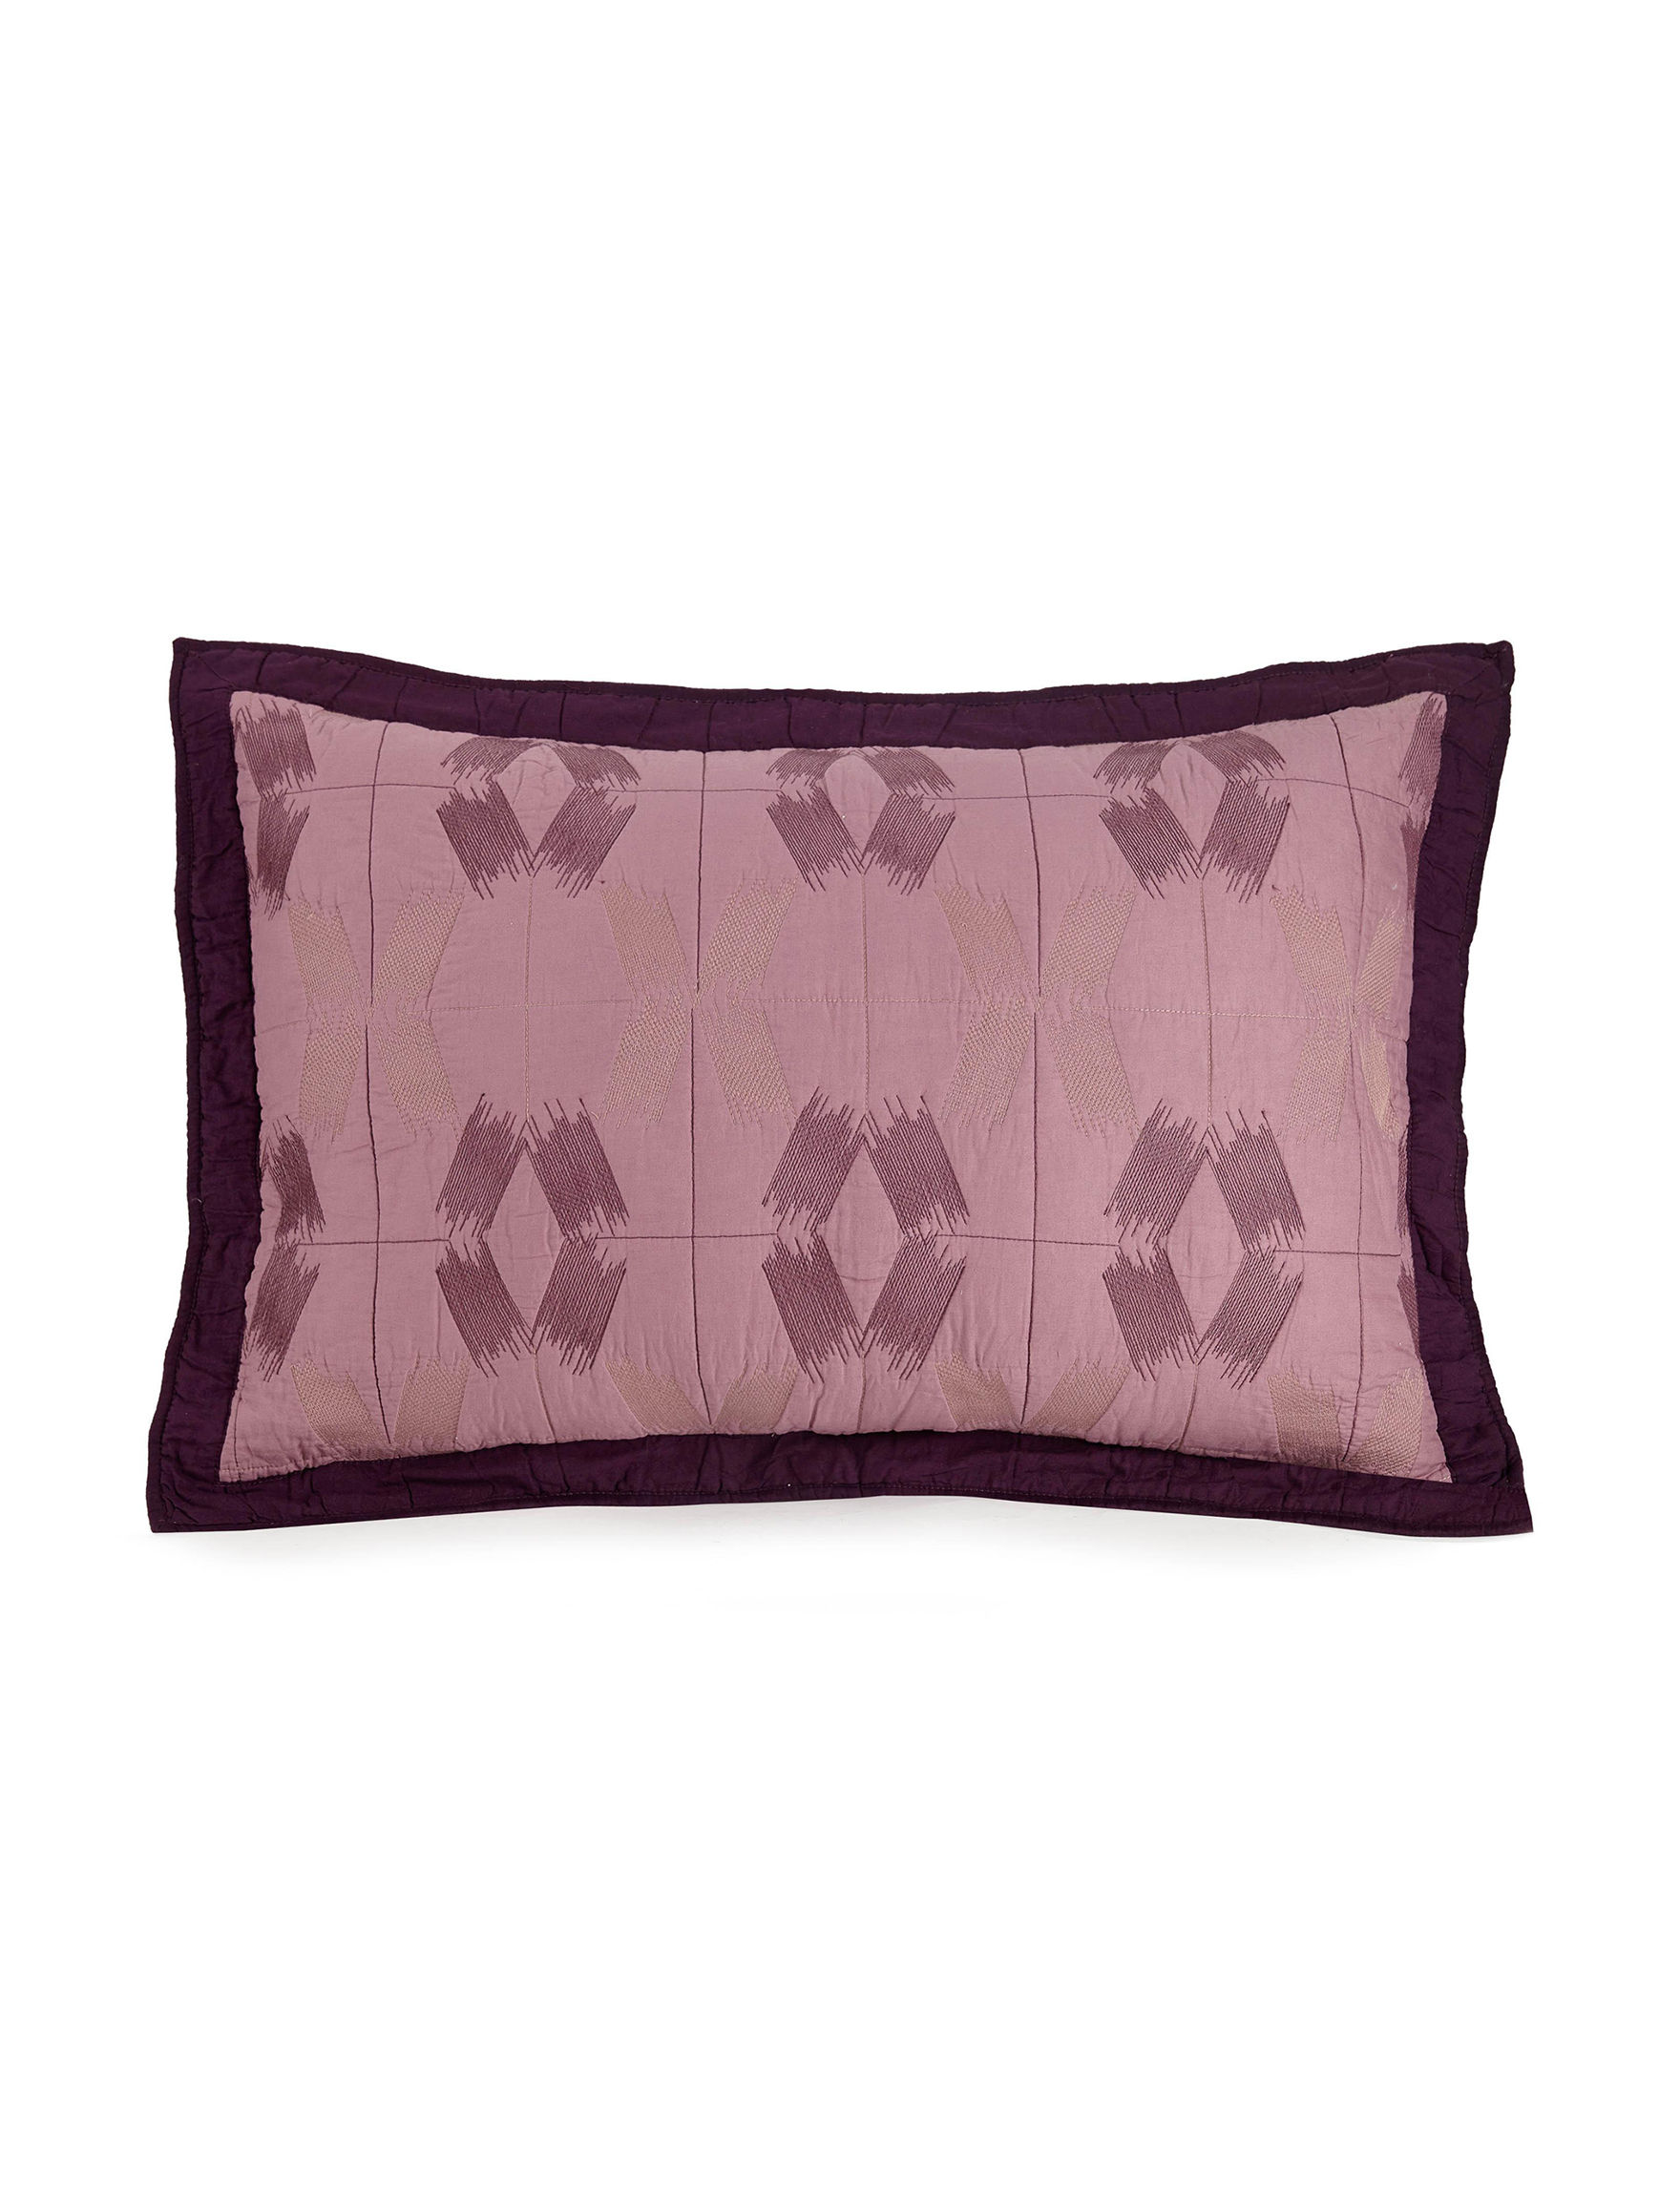 Presidio Square Lilac Pillow Shams